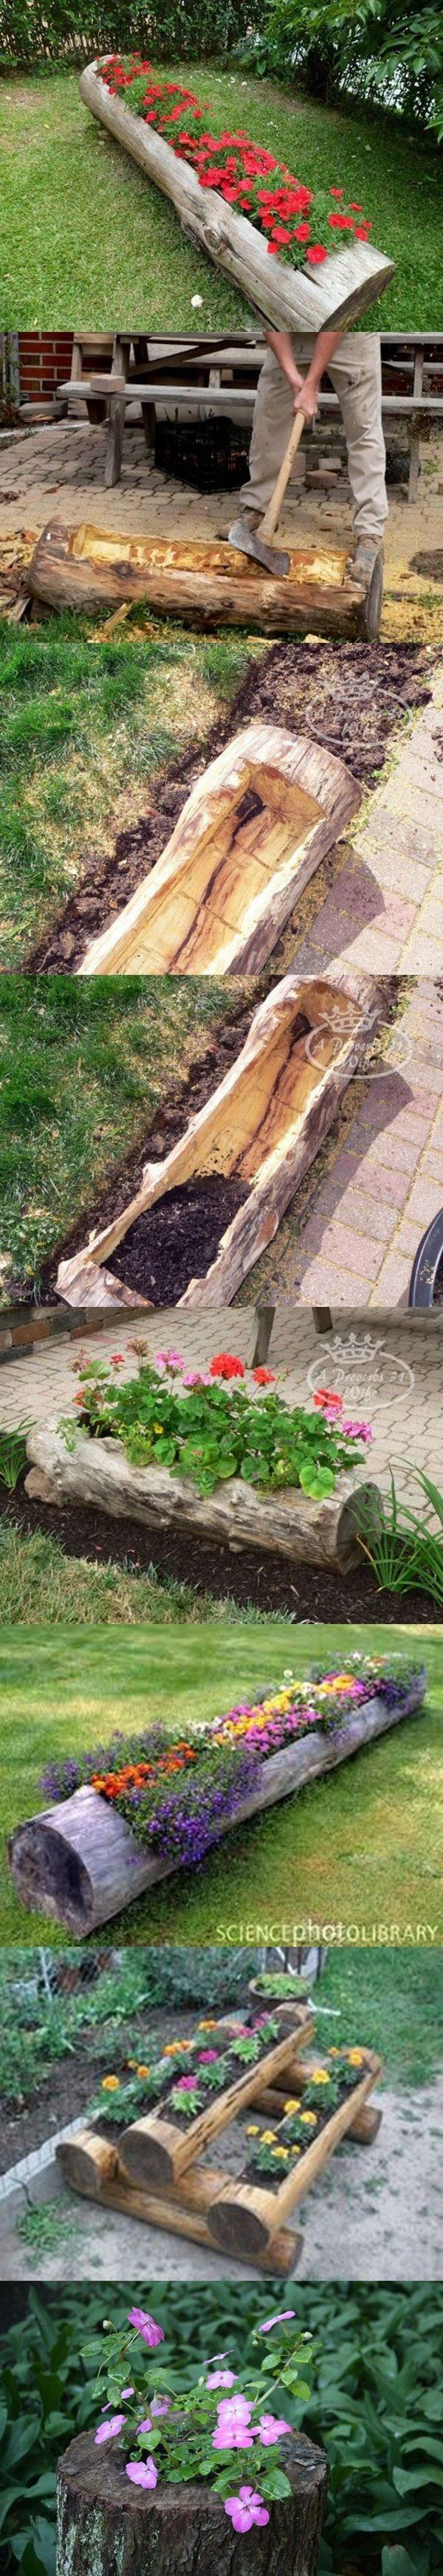 Best 25 Logs ideas on Pinterest